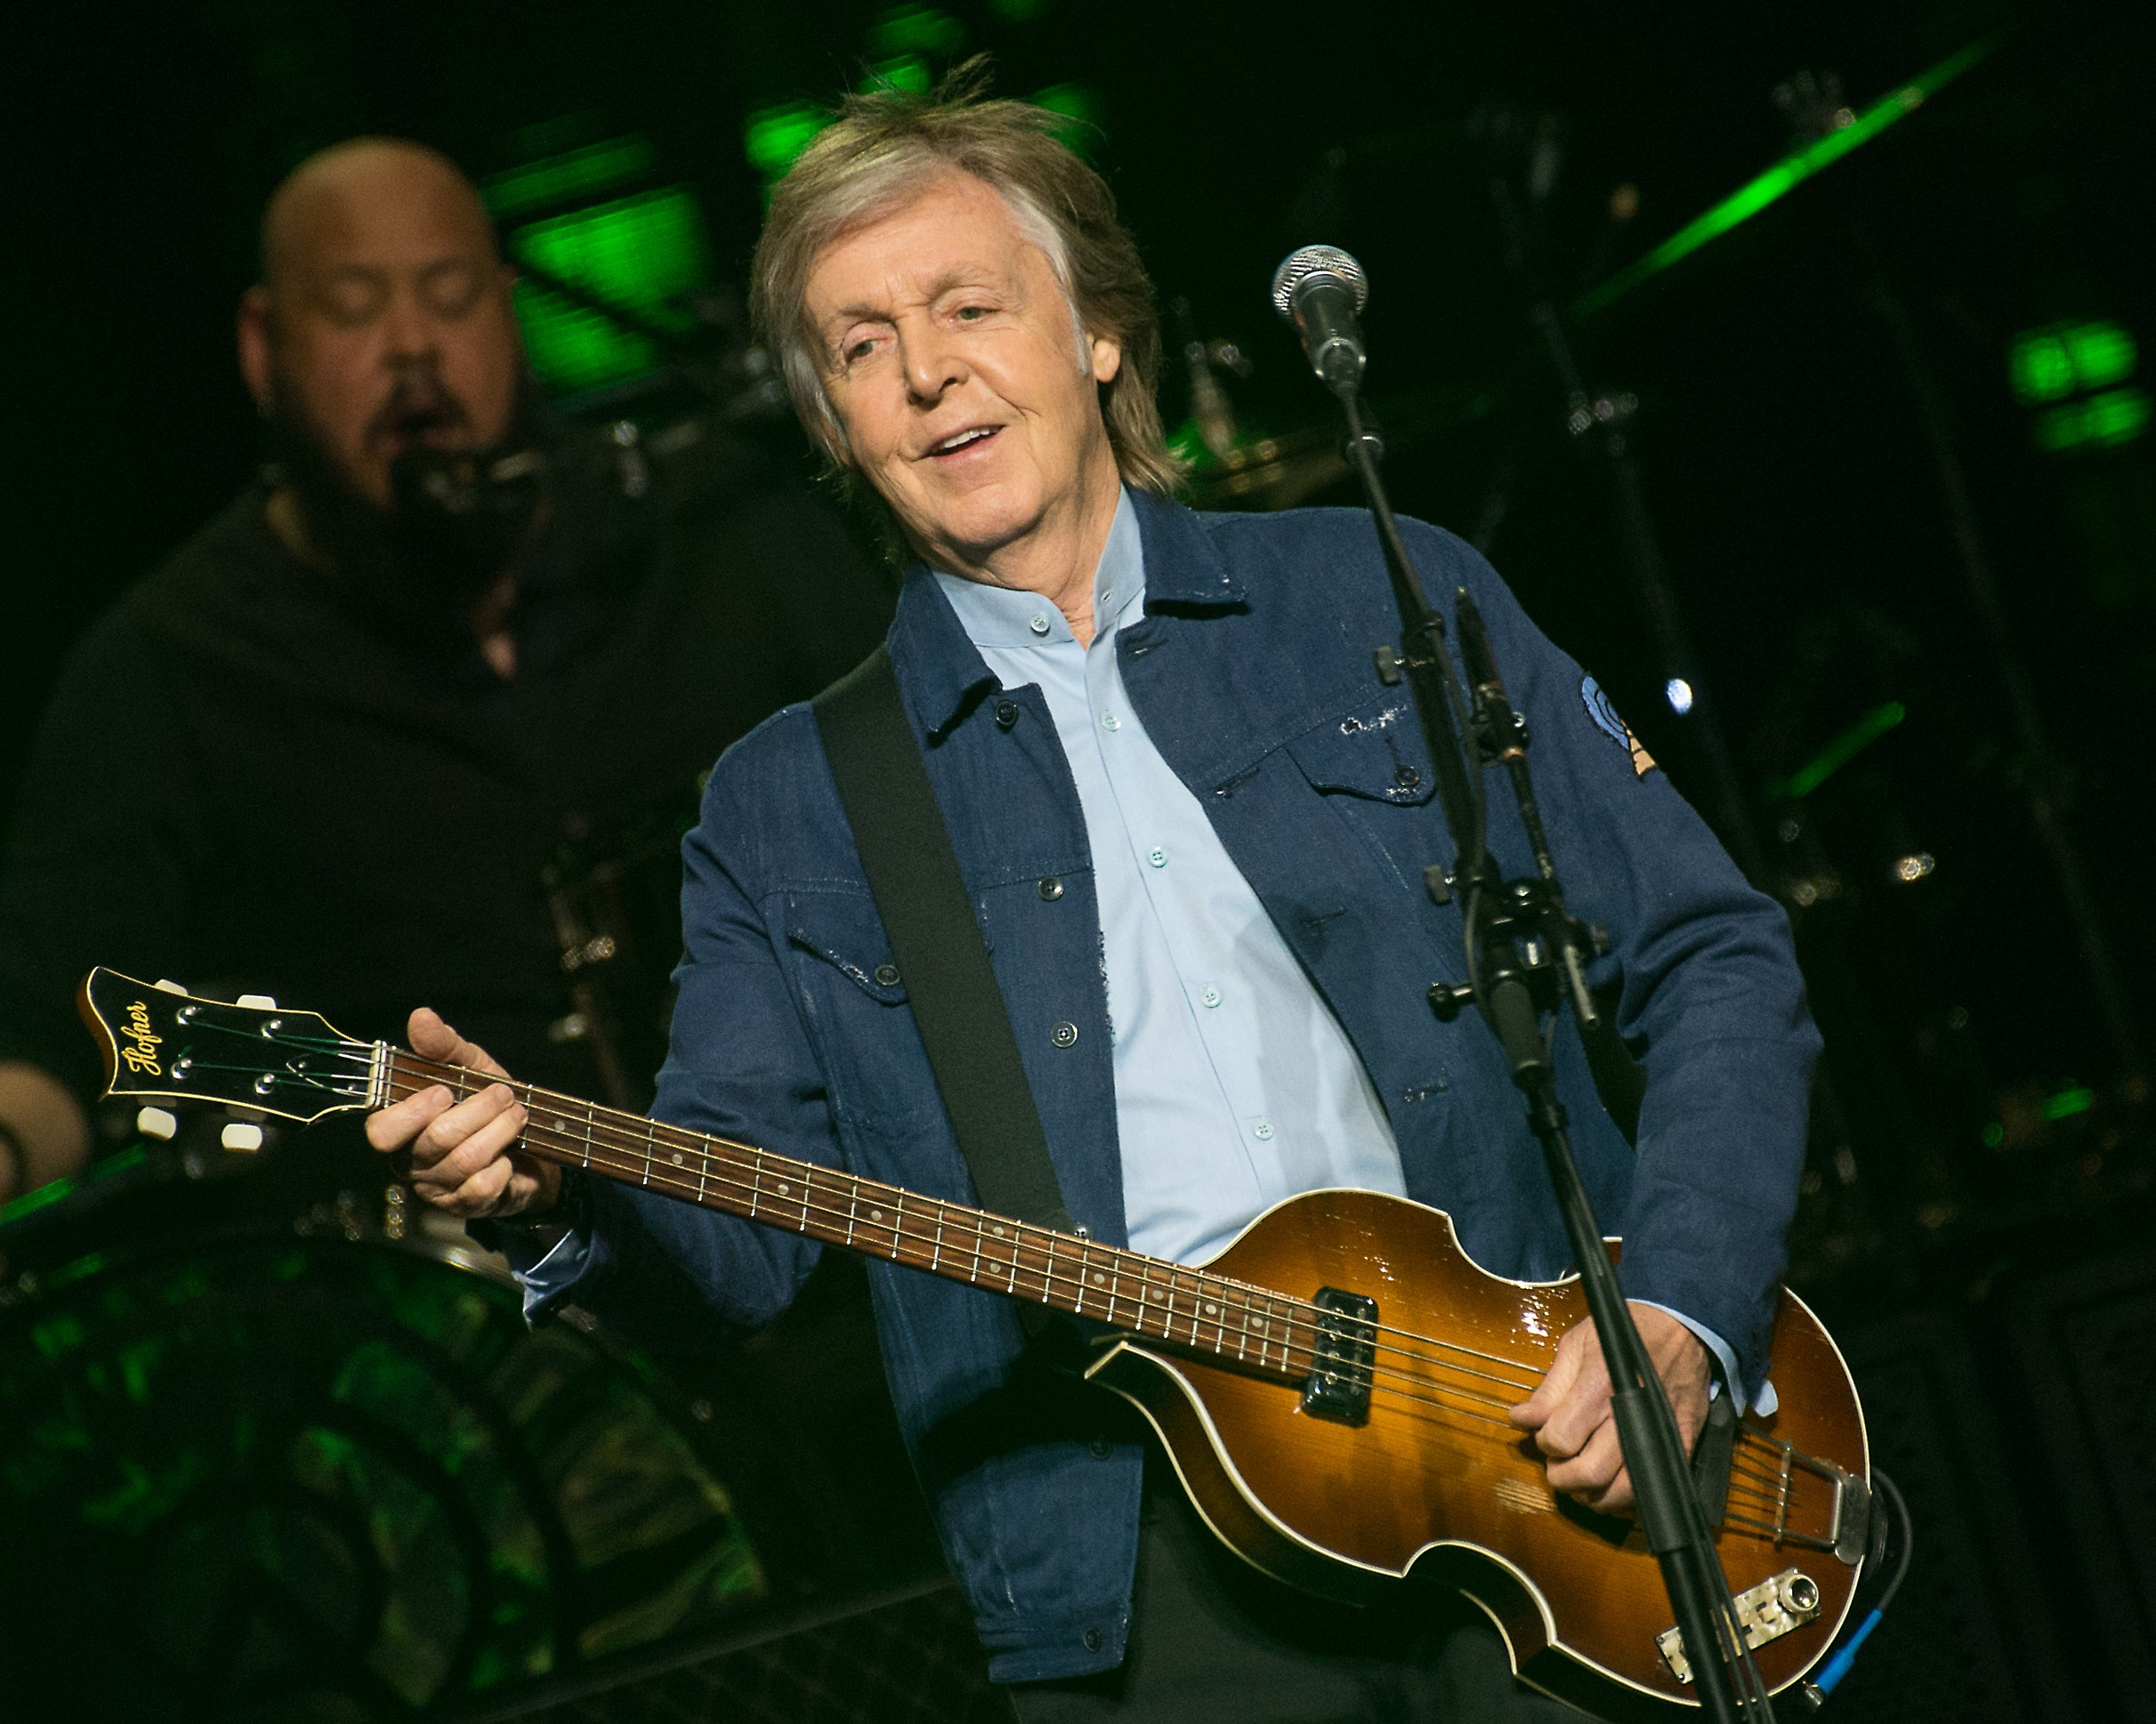 December 14, 2018 - Sir Paul McCartney in concert at The SSE Hydro, Glasgow, Great Britain 14th December 2018 (Credit Image: ?? RMV via ZUMA Press)